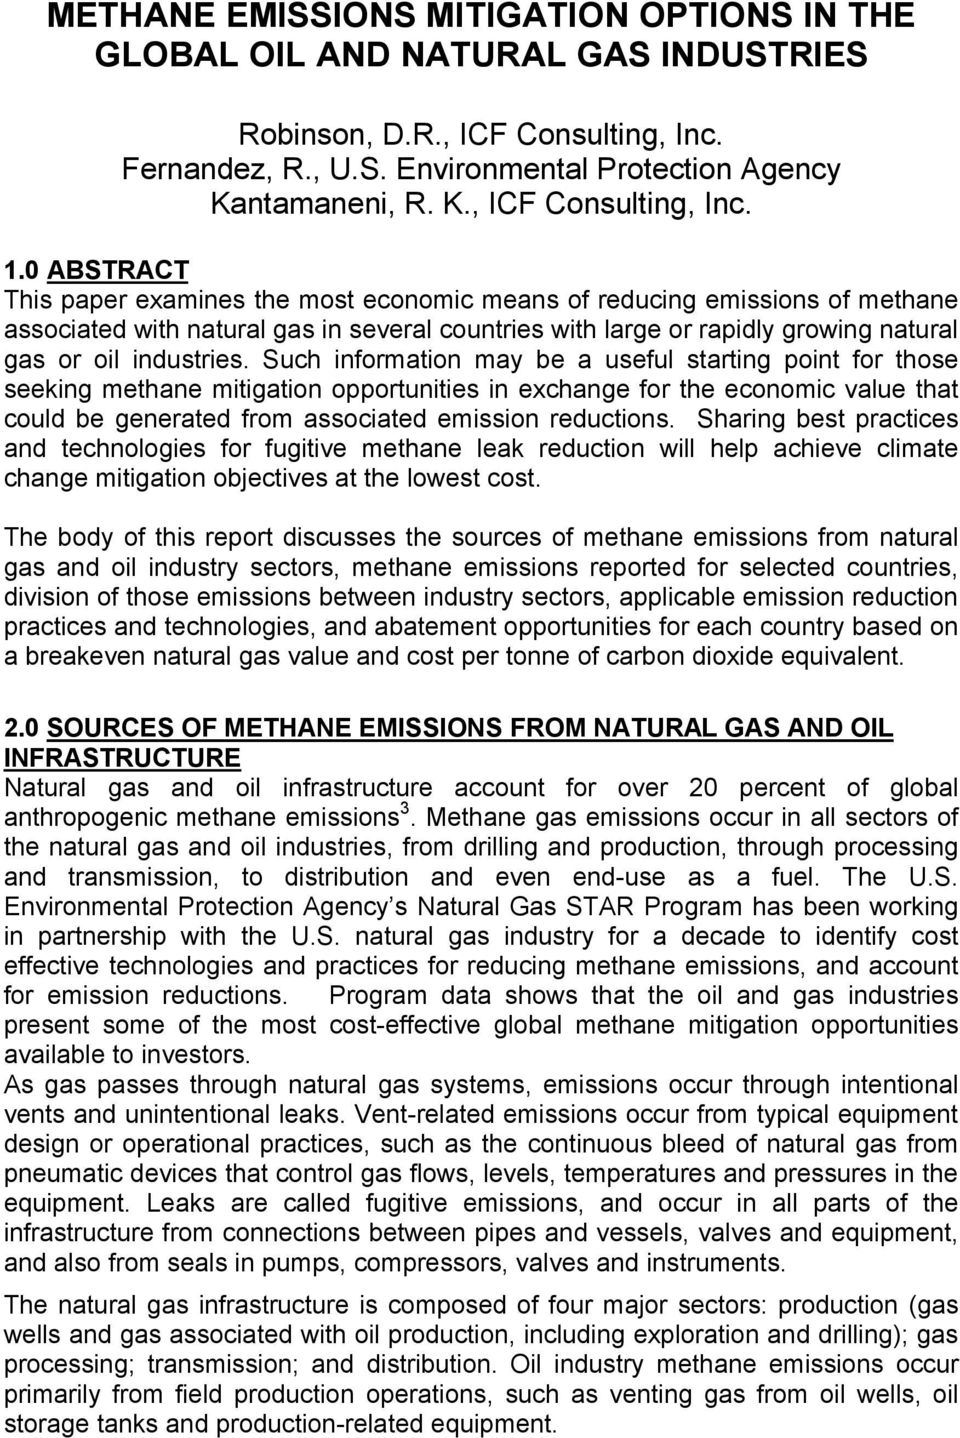 Such information may be a useful starting point for those seeking methane mitigation opportunities in exchange for the economic value that could be generated from associated emission reductions.